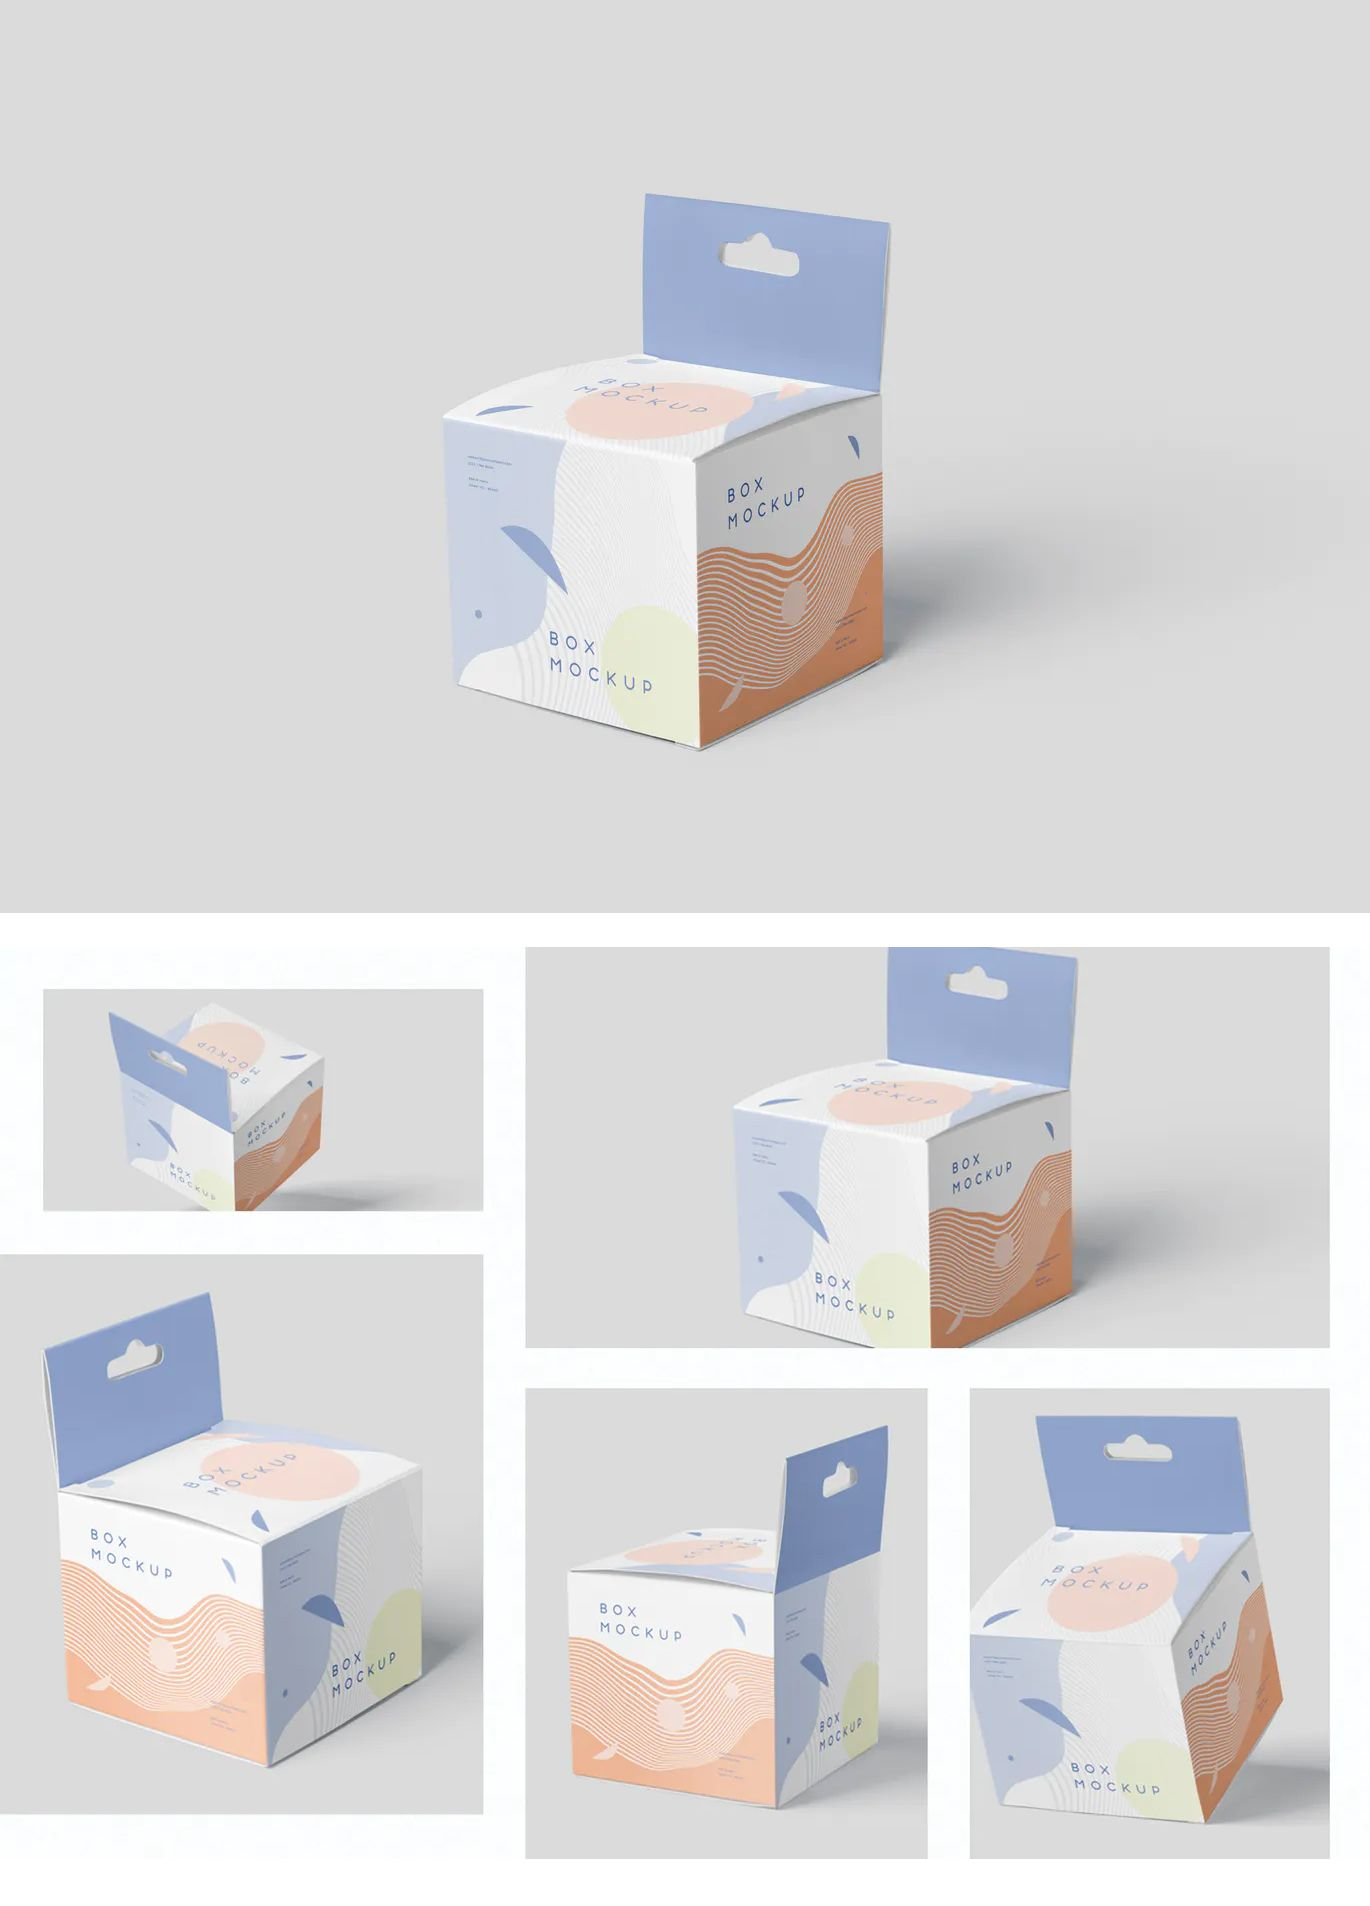 Download Box Mockup Set Mini Square With Hanger Packaging Template Design Box Design Templates Graphic Design Packaging